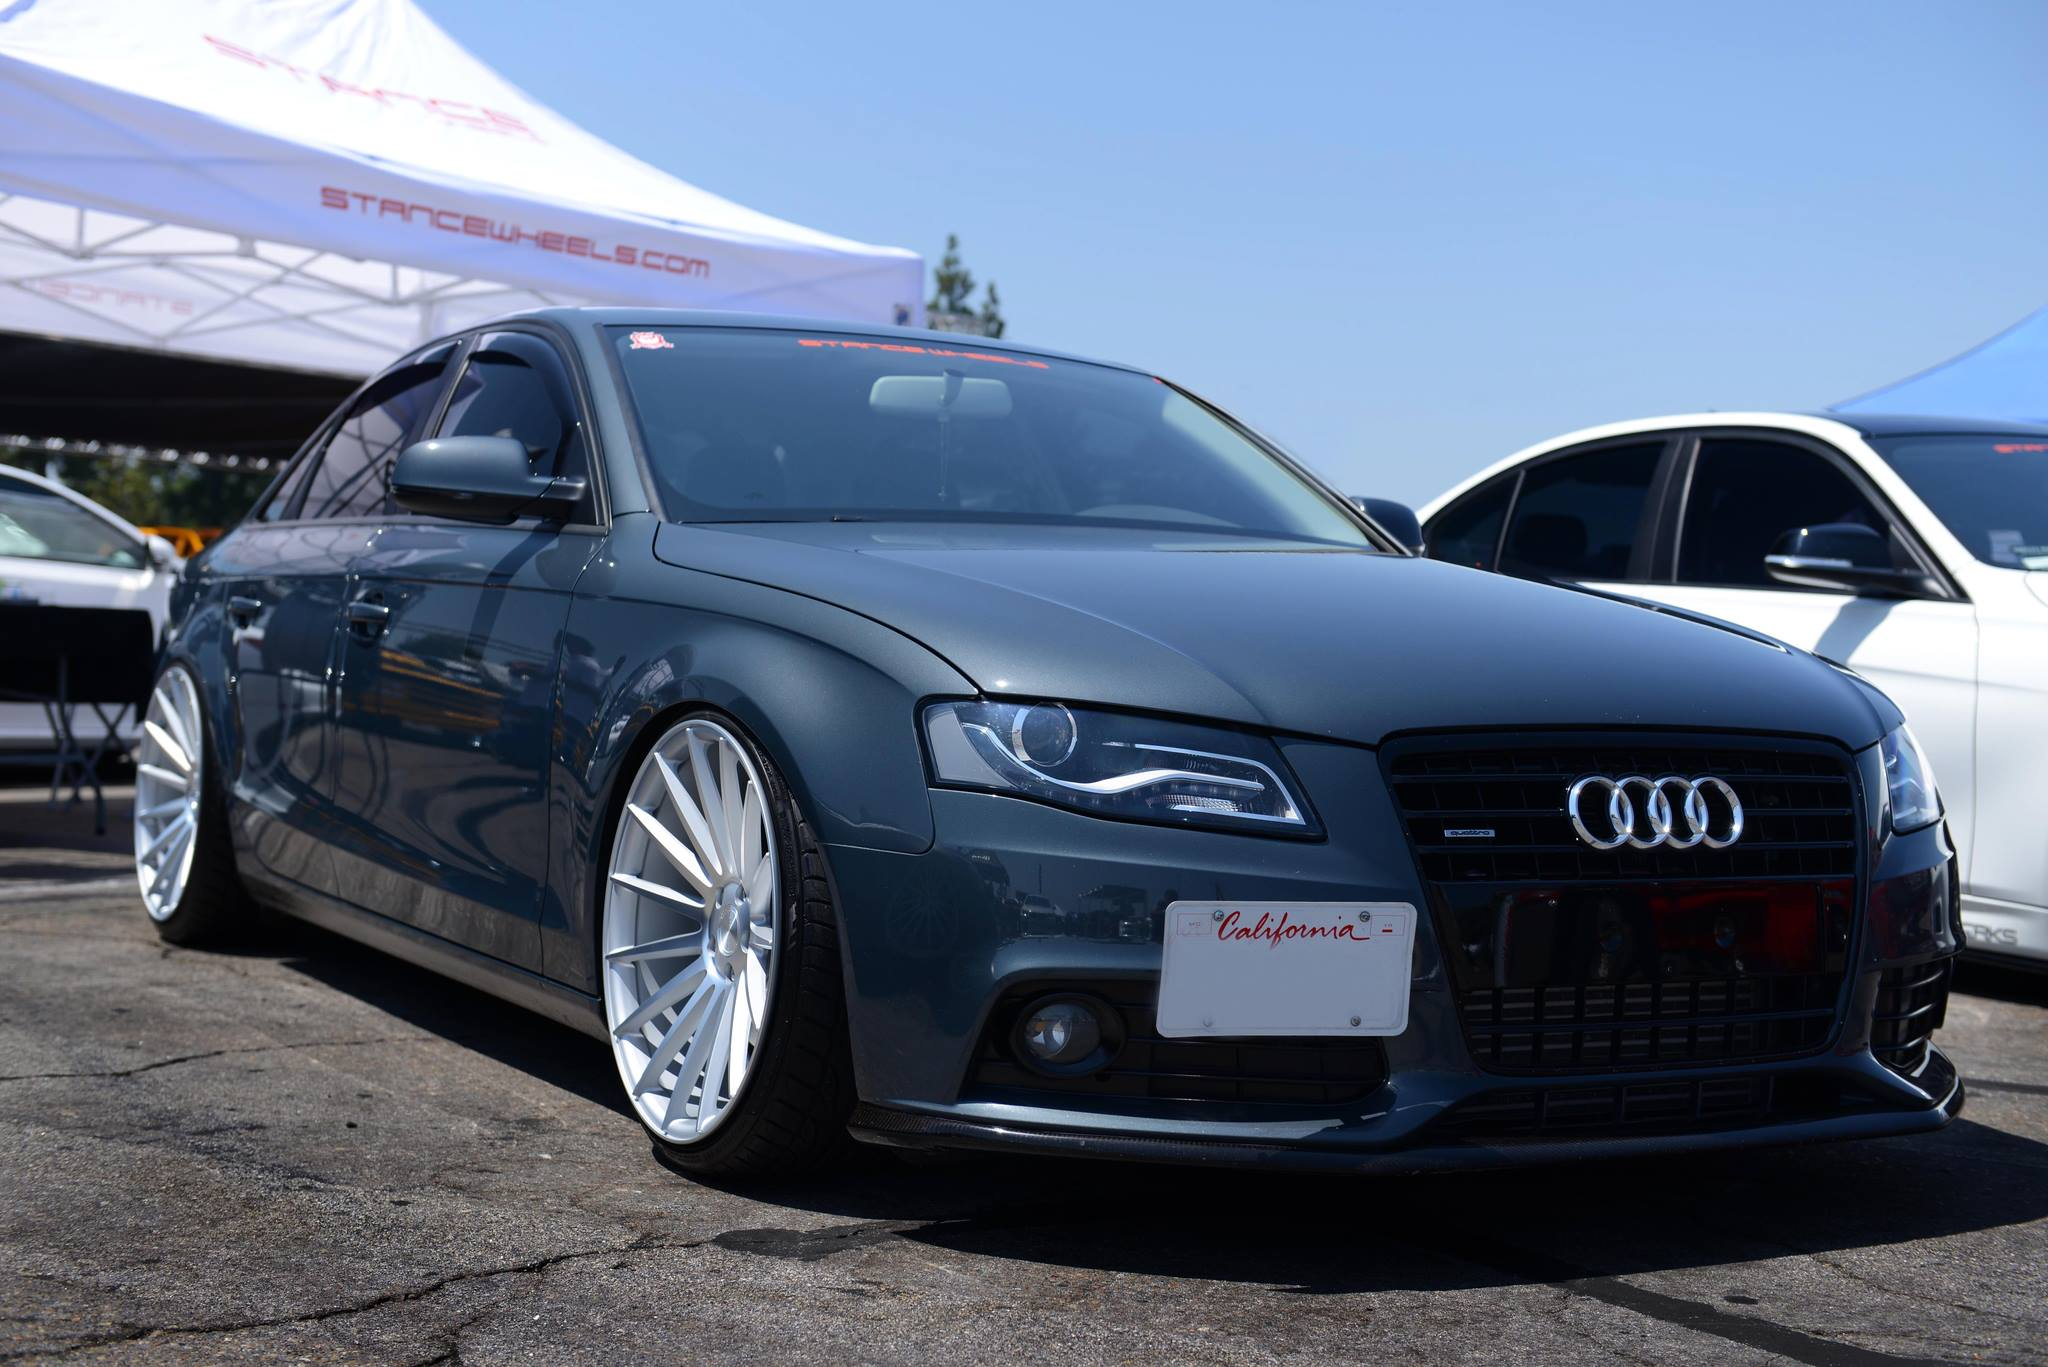 Stance Wheels SC-7 Silver on Audi A4